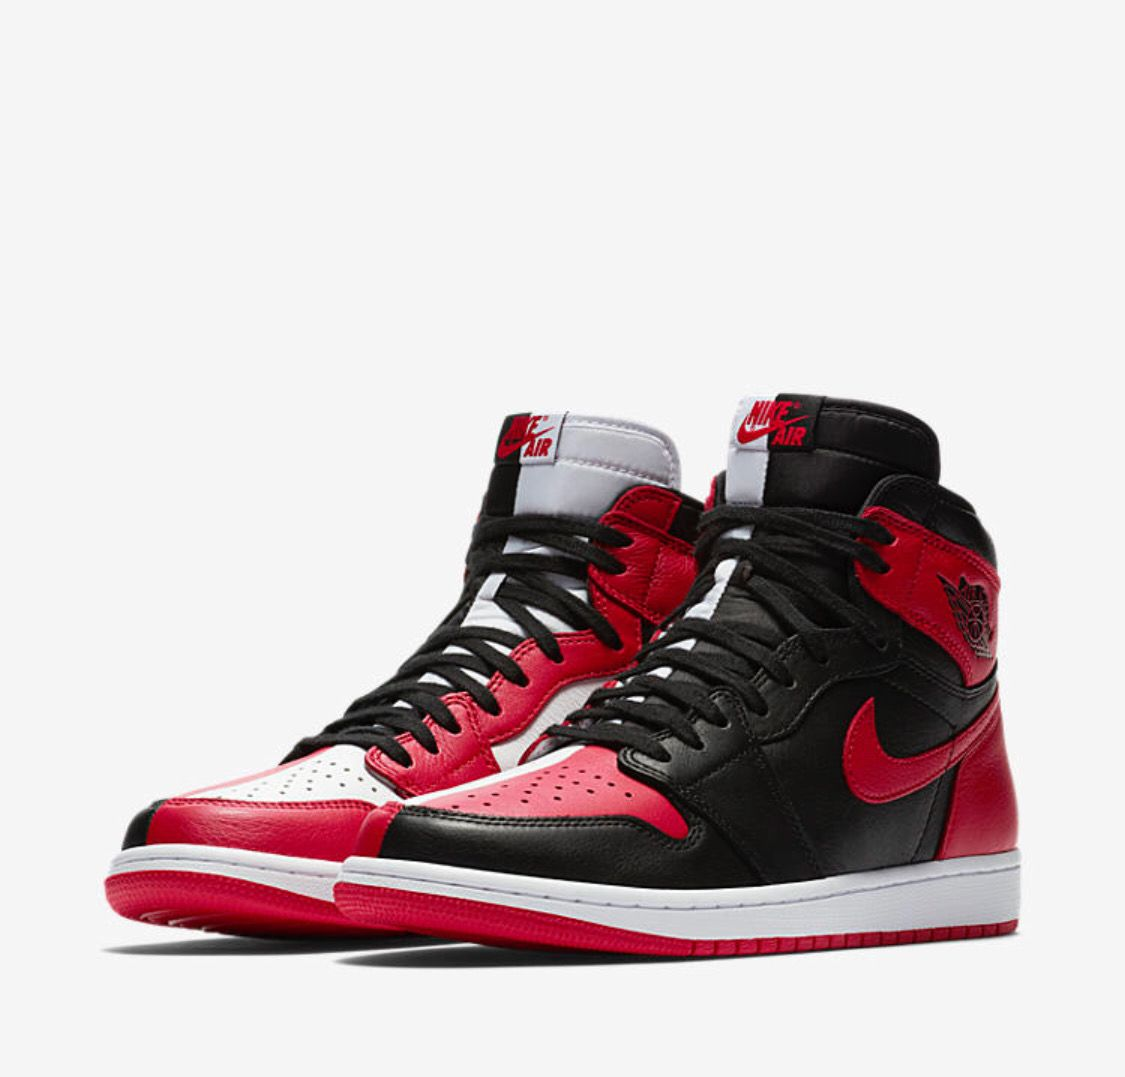 quality design a8764 08f4a Jordan 1, Nike Air Jordans, On Shoes, Sneaker, Slippers, Sneakers,